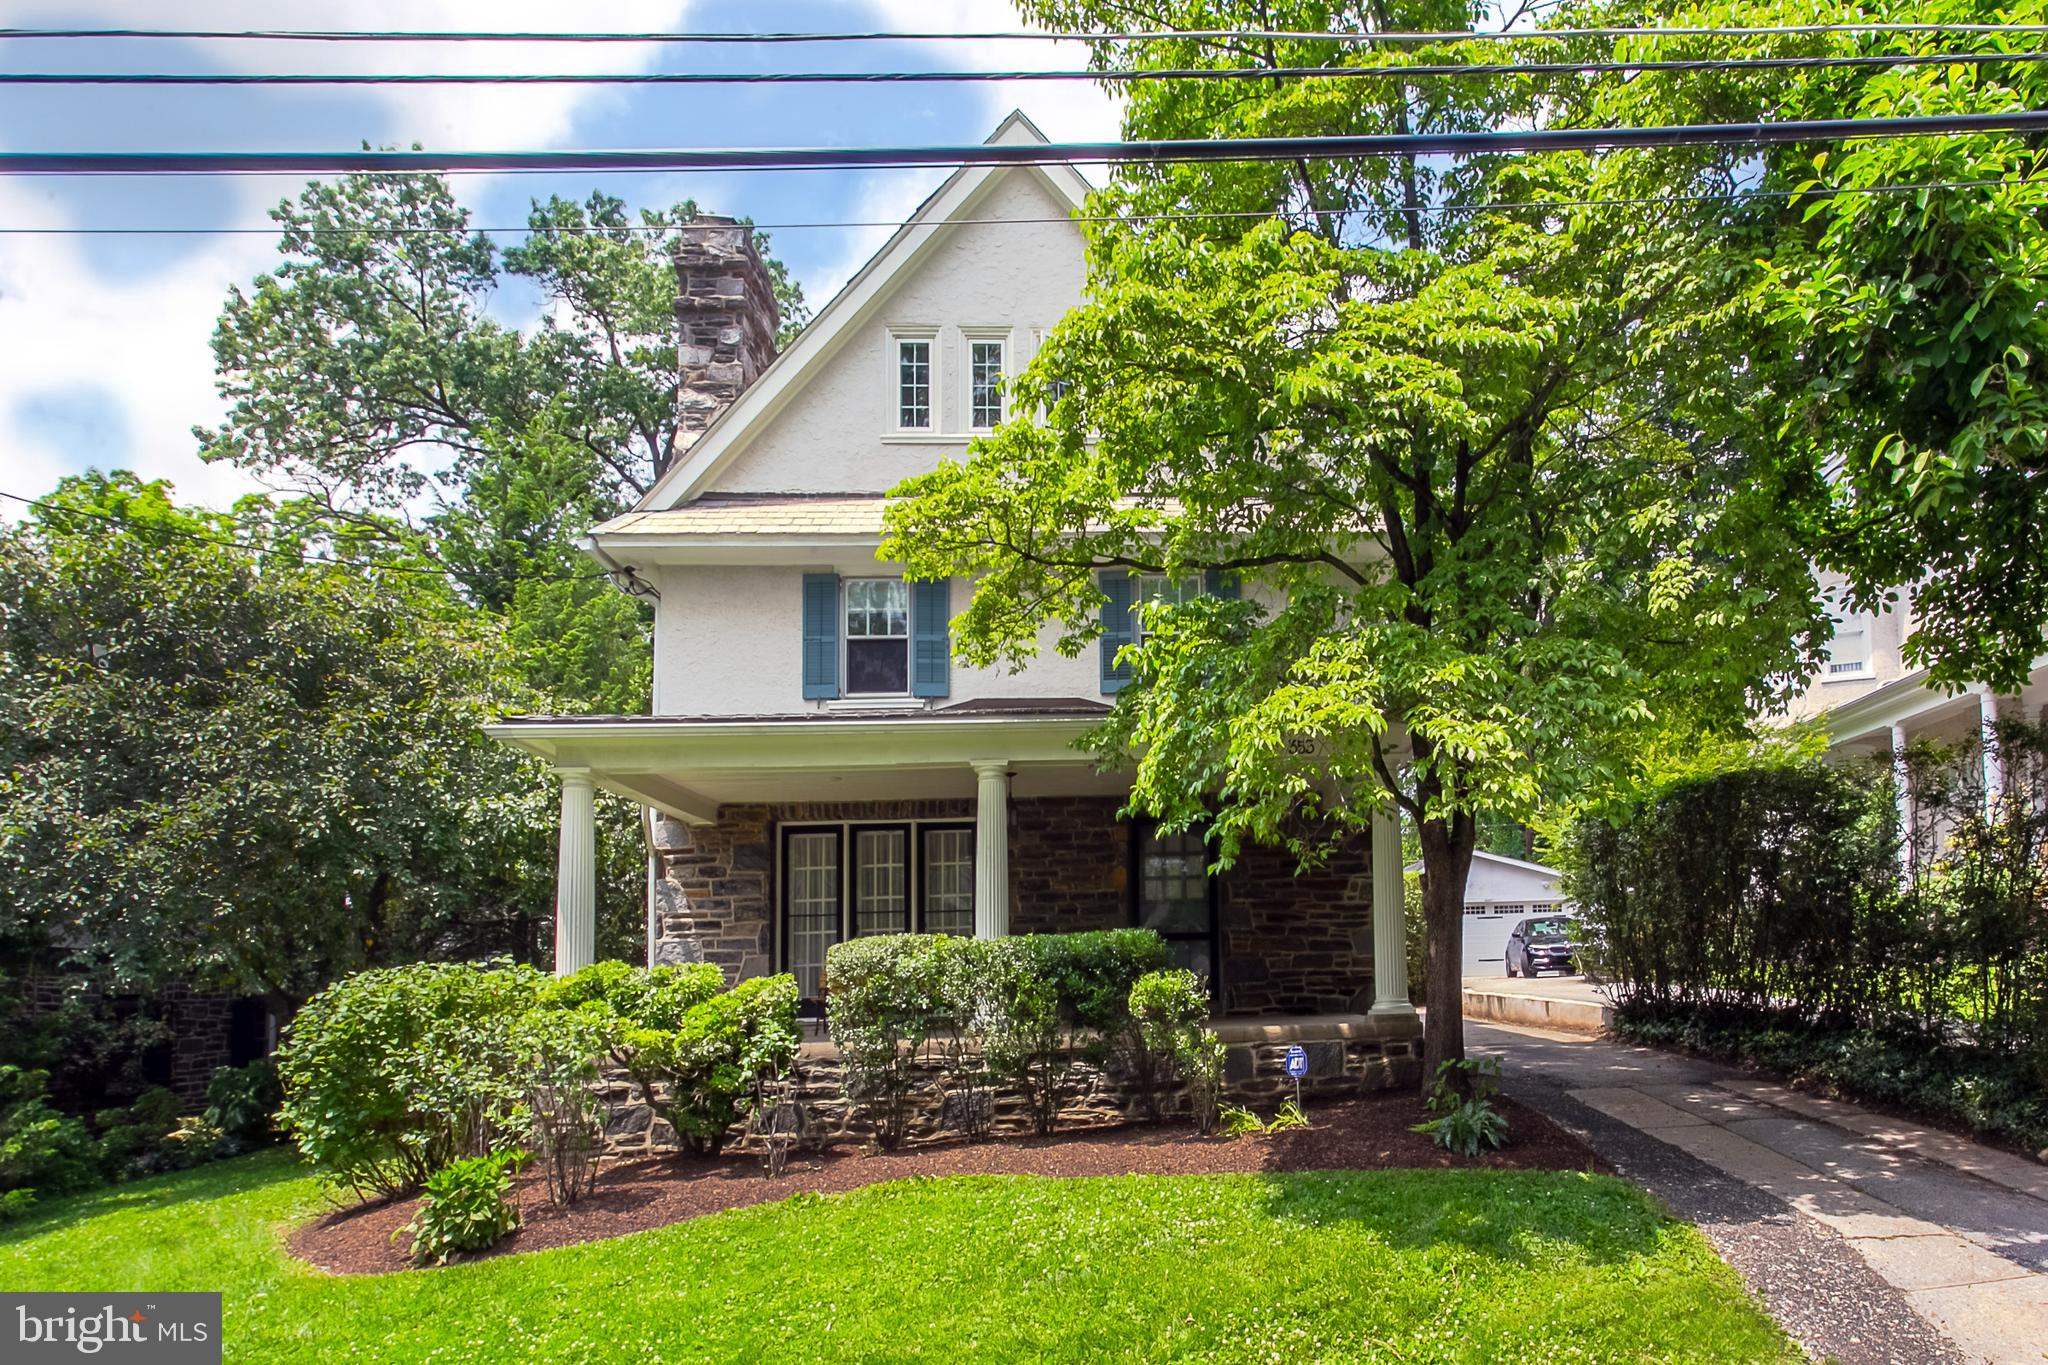 353 N BOWMAN AVENUE, MERION STATION, PA 19066